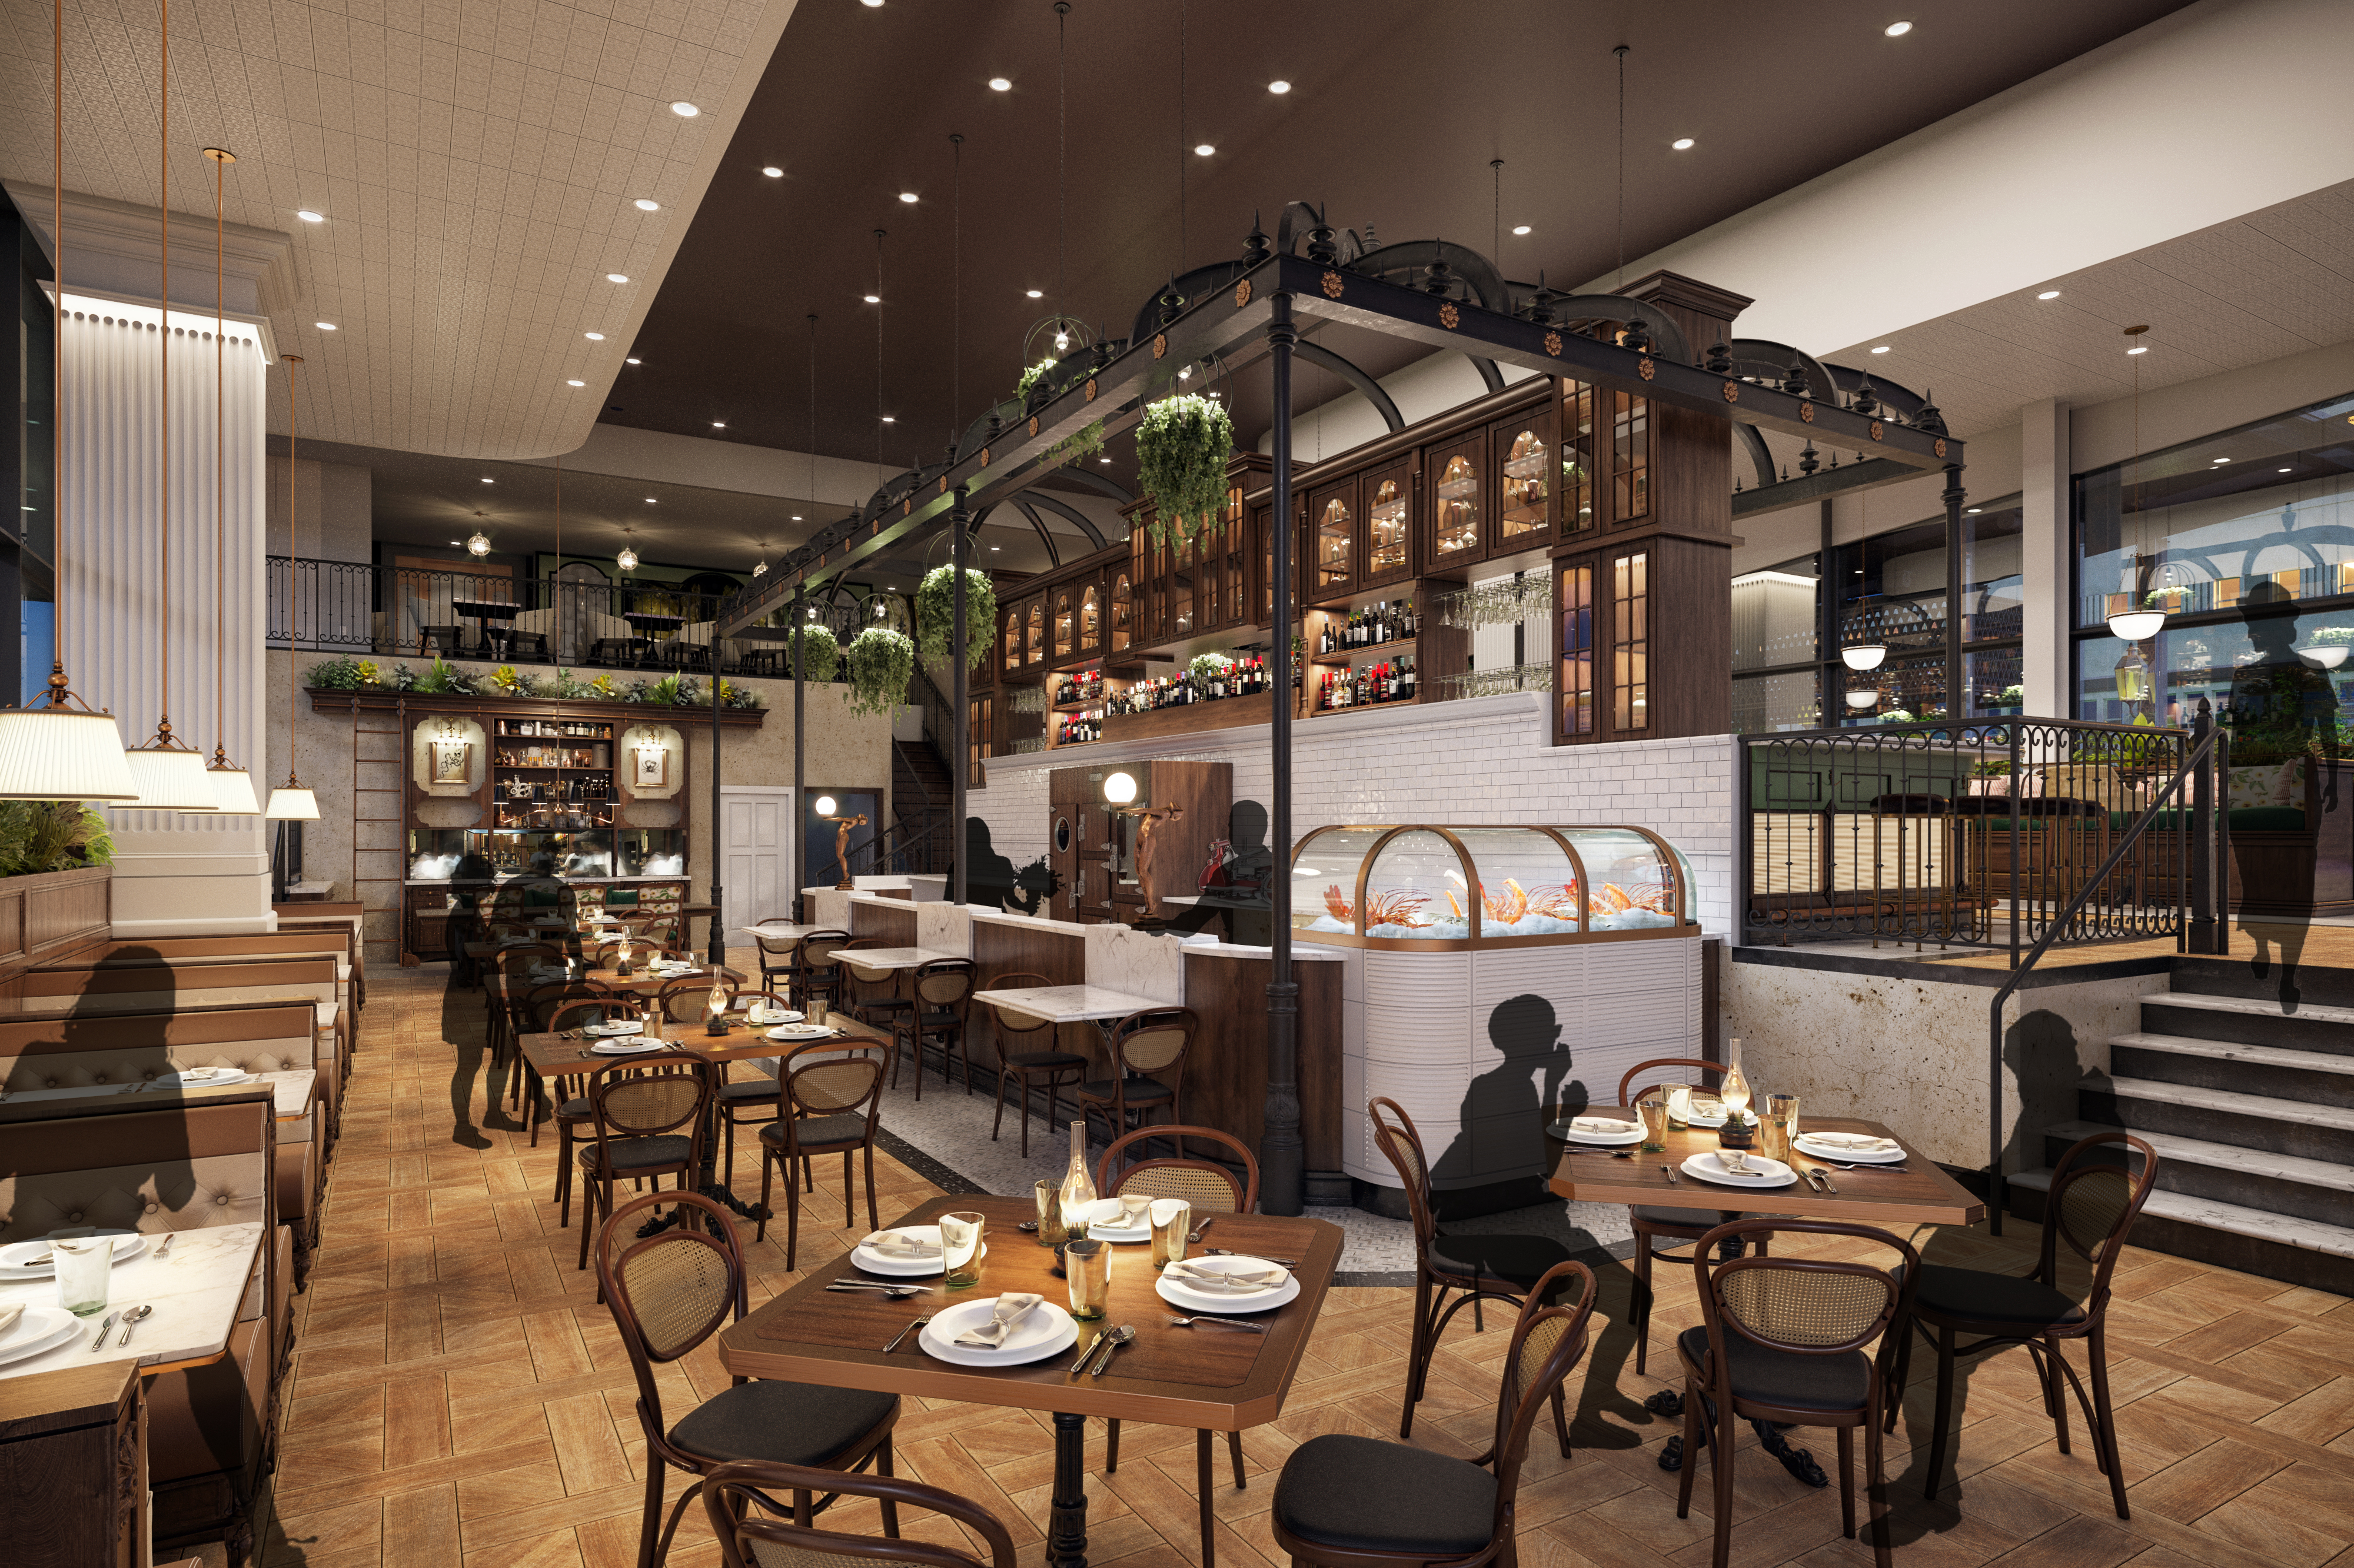 A look inside the cavernous dining room at Dauphine's.